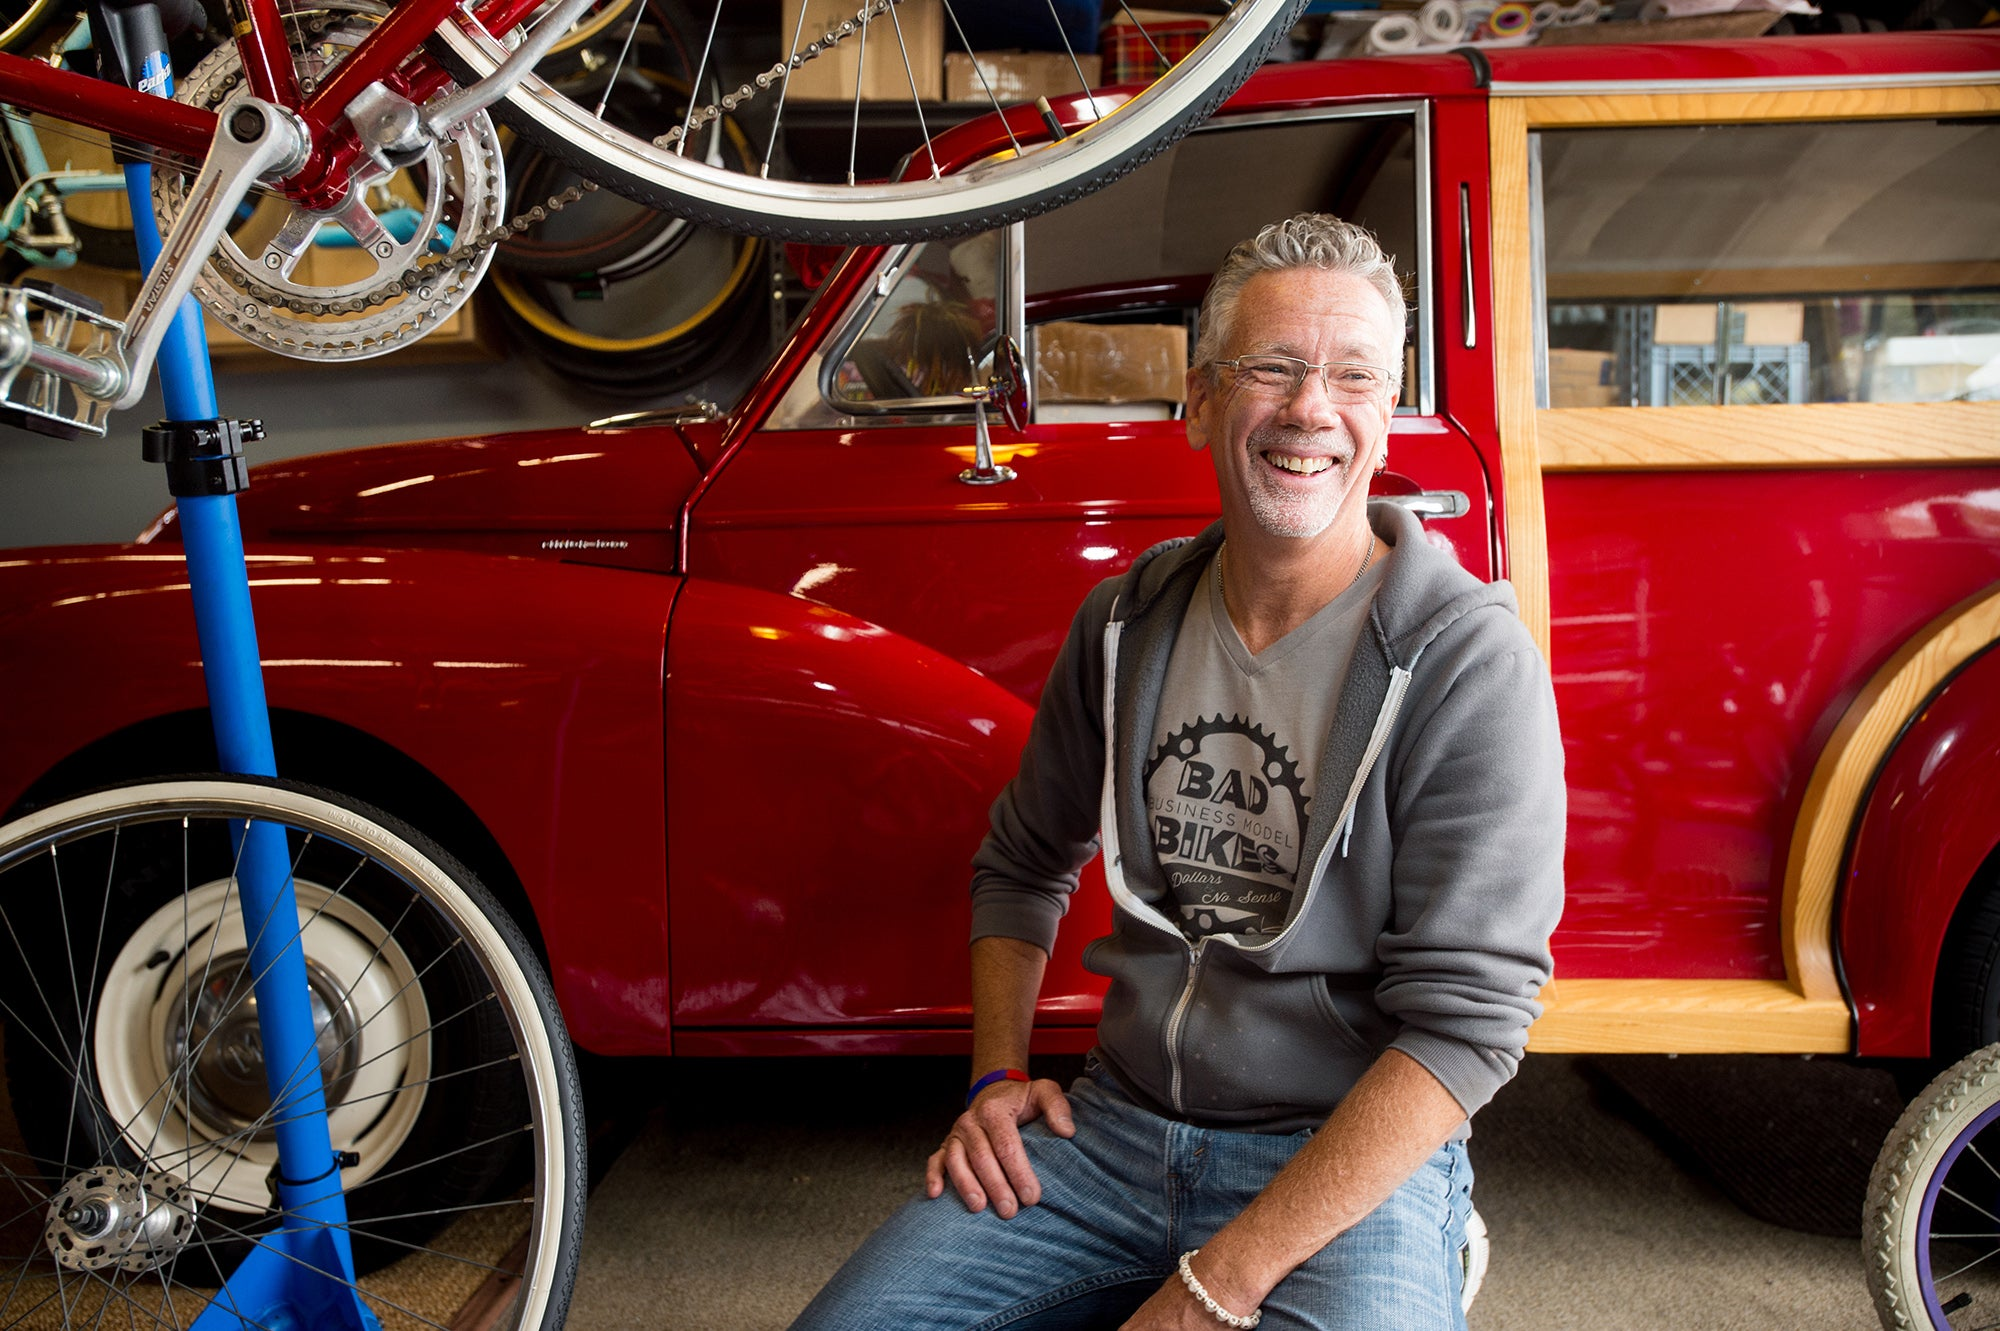 Bill Bradford in his garage with bicycles and a vintage truck